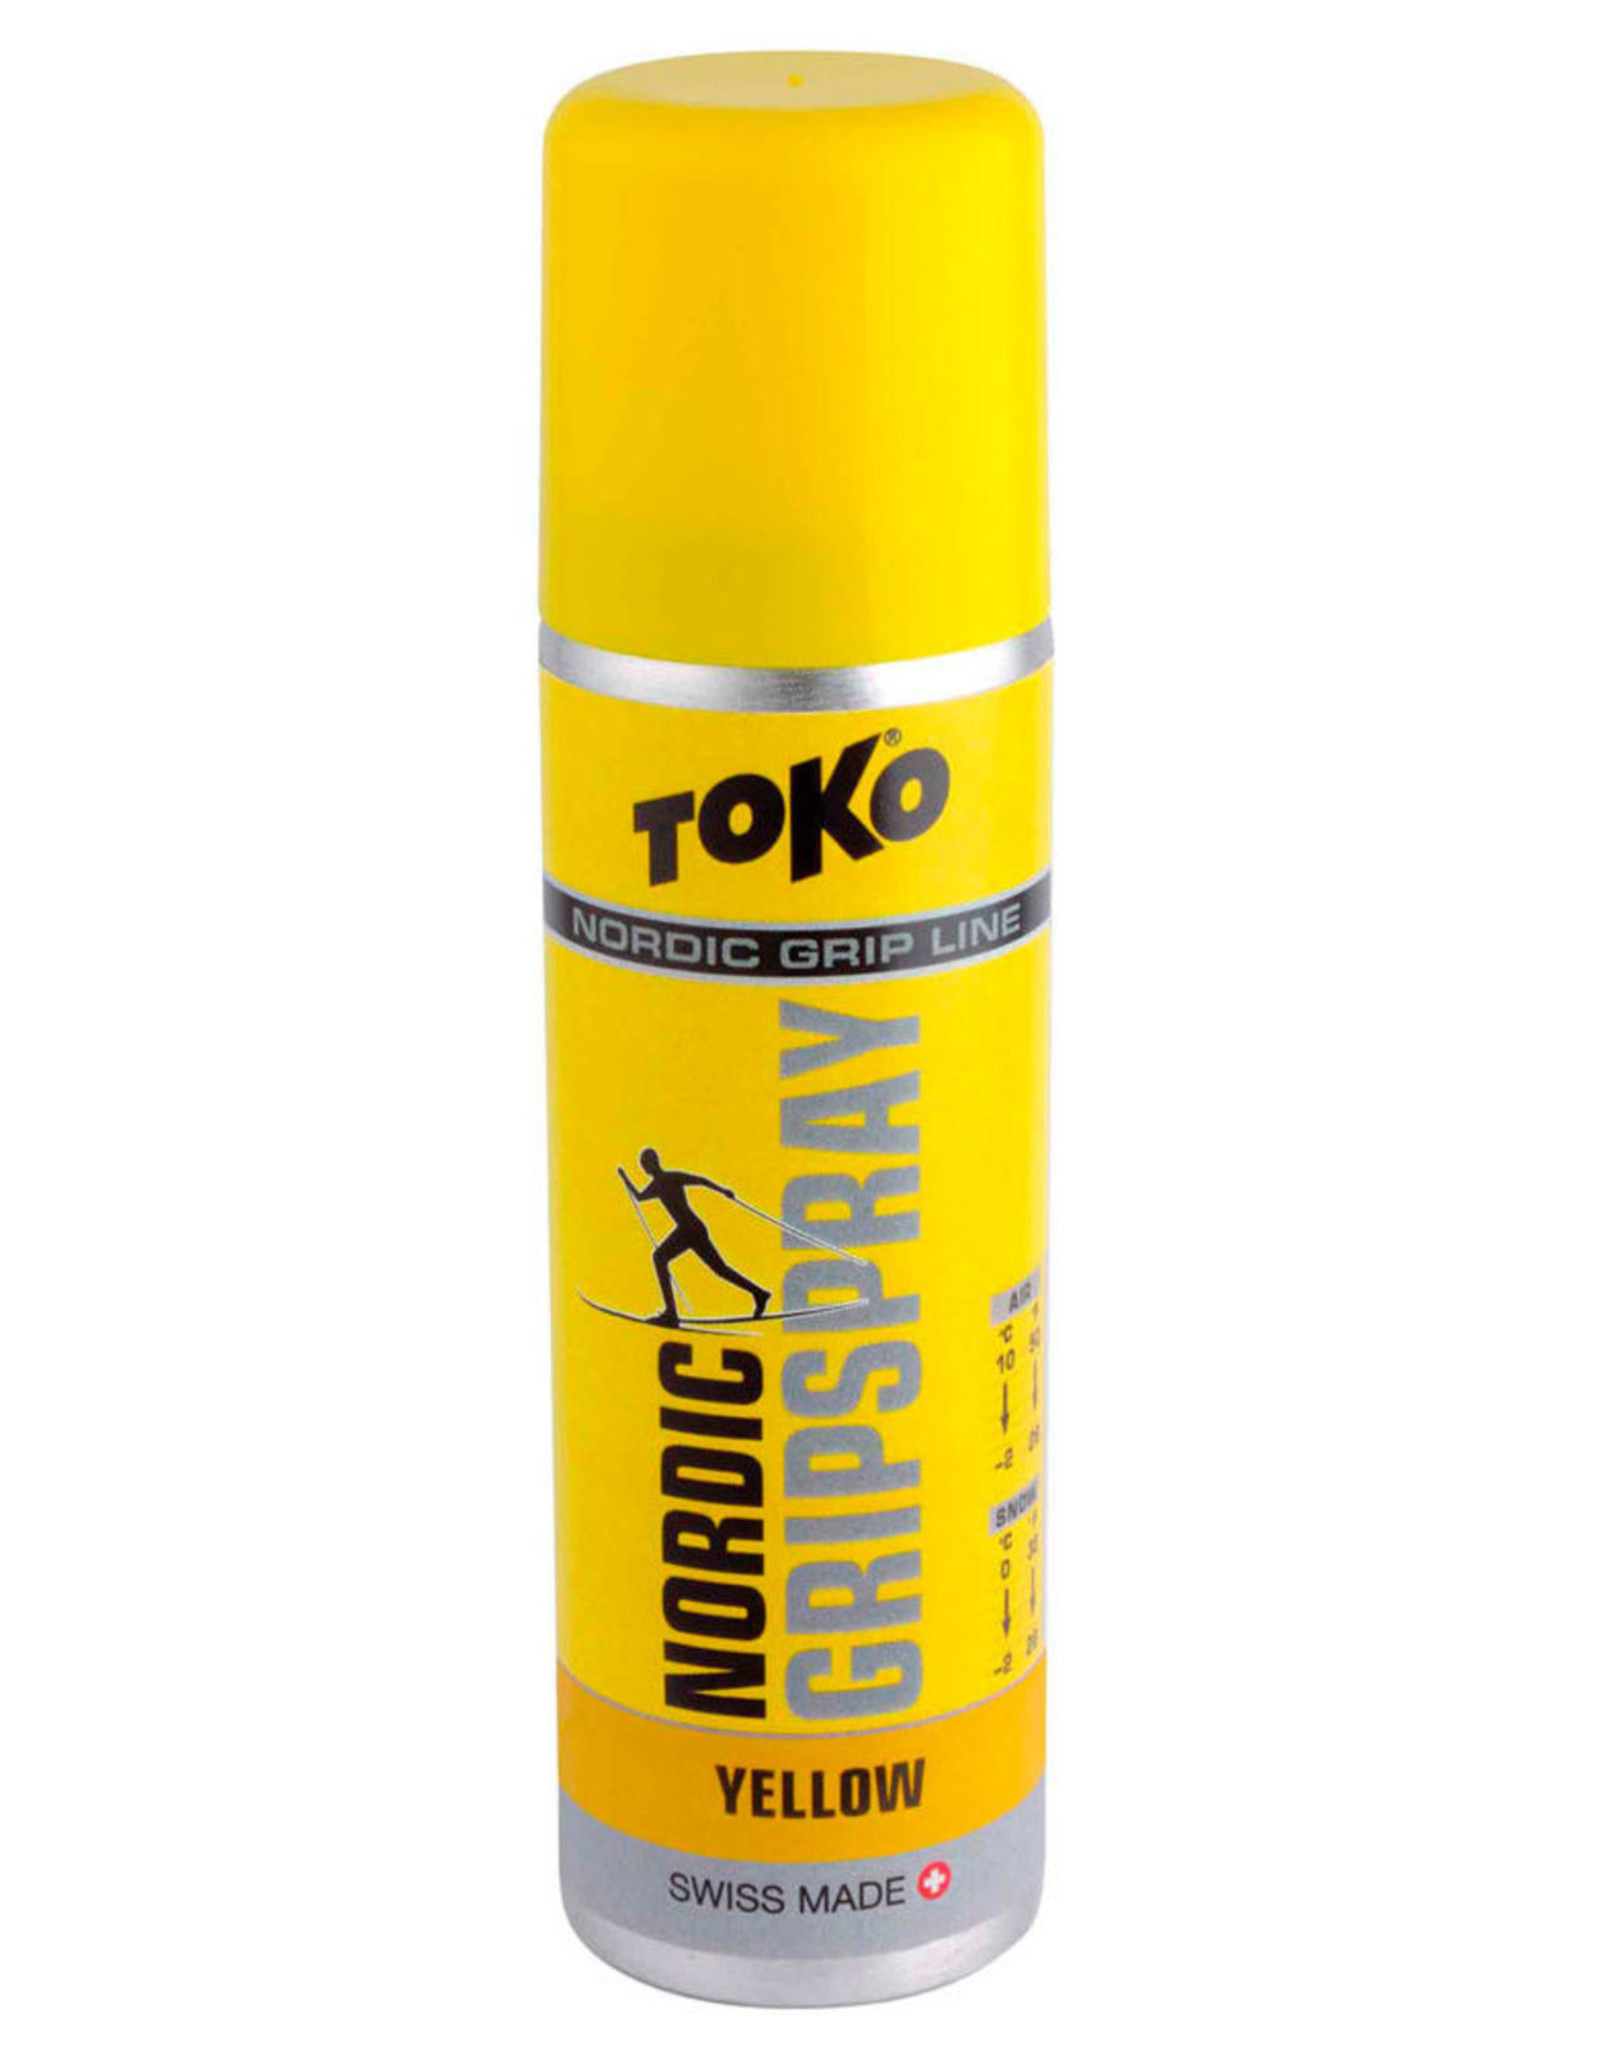 Toko GripSpray Yellow 70ml